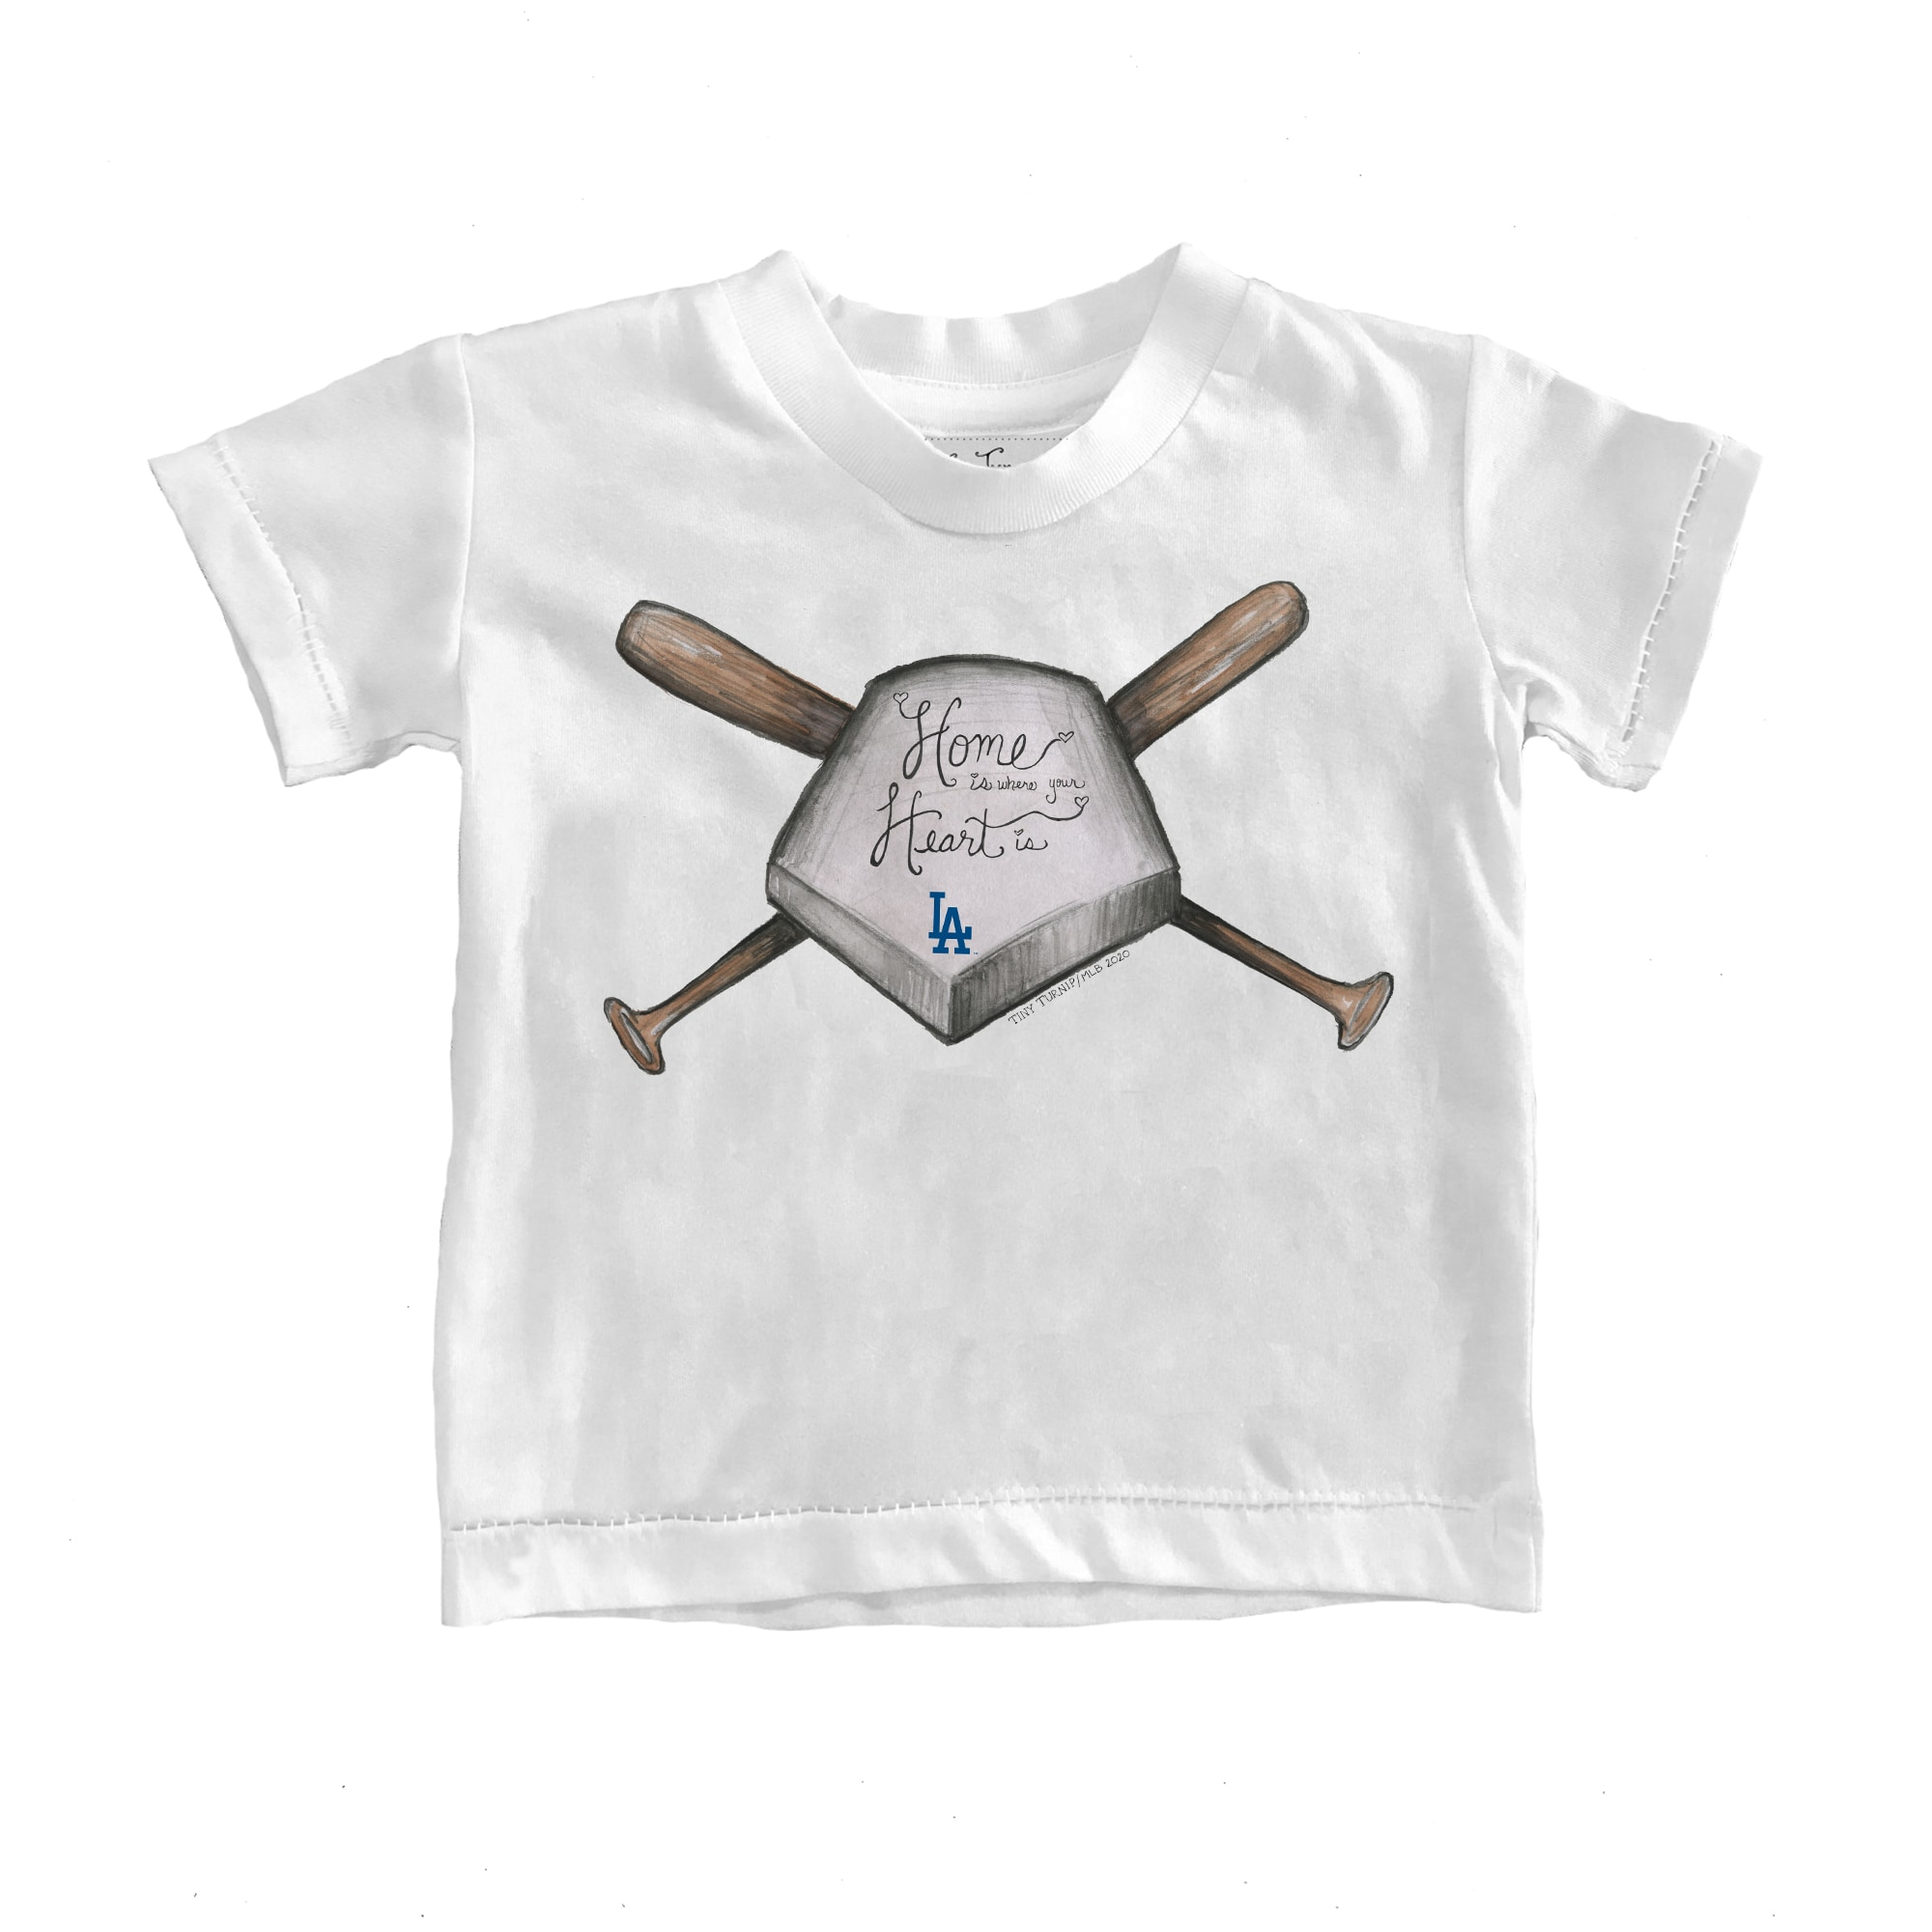 Los Angeles Dodgers Tiny Turnip Toddler Home Is Where Your Heart Is T-Shirt - White